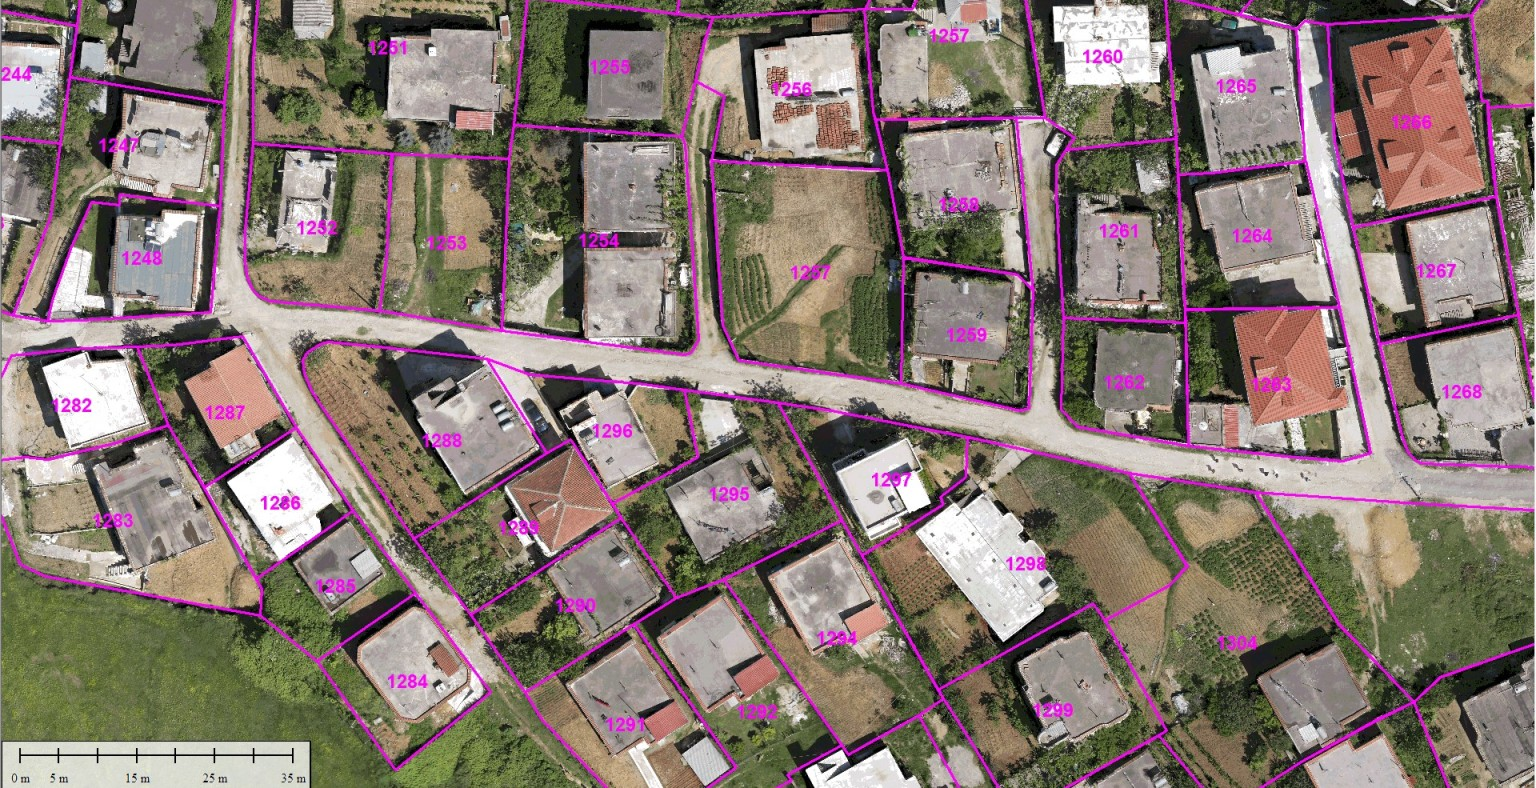 cadastral boundary layer on uav orthophoto generated by Micro Aerial Projects, a uav mapping company